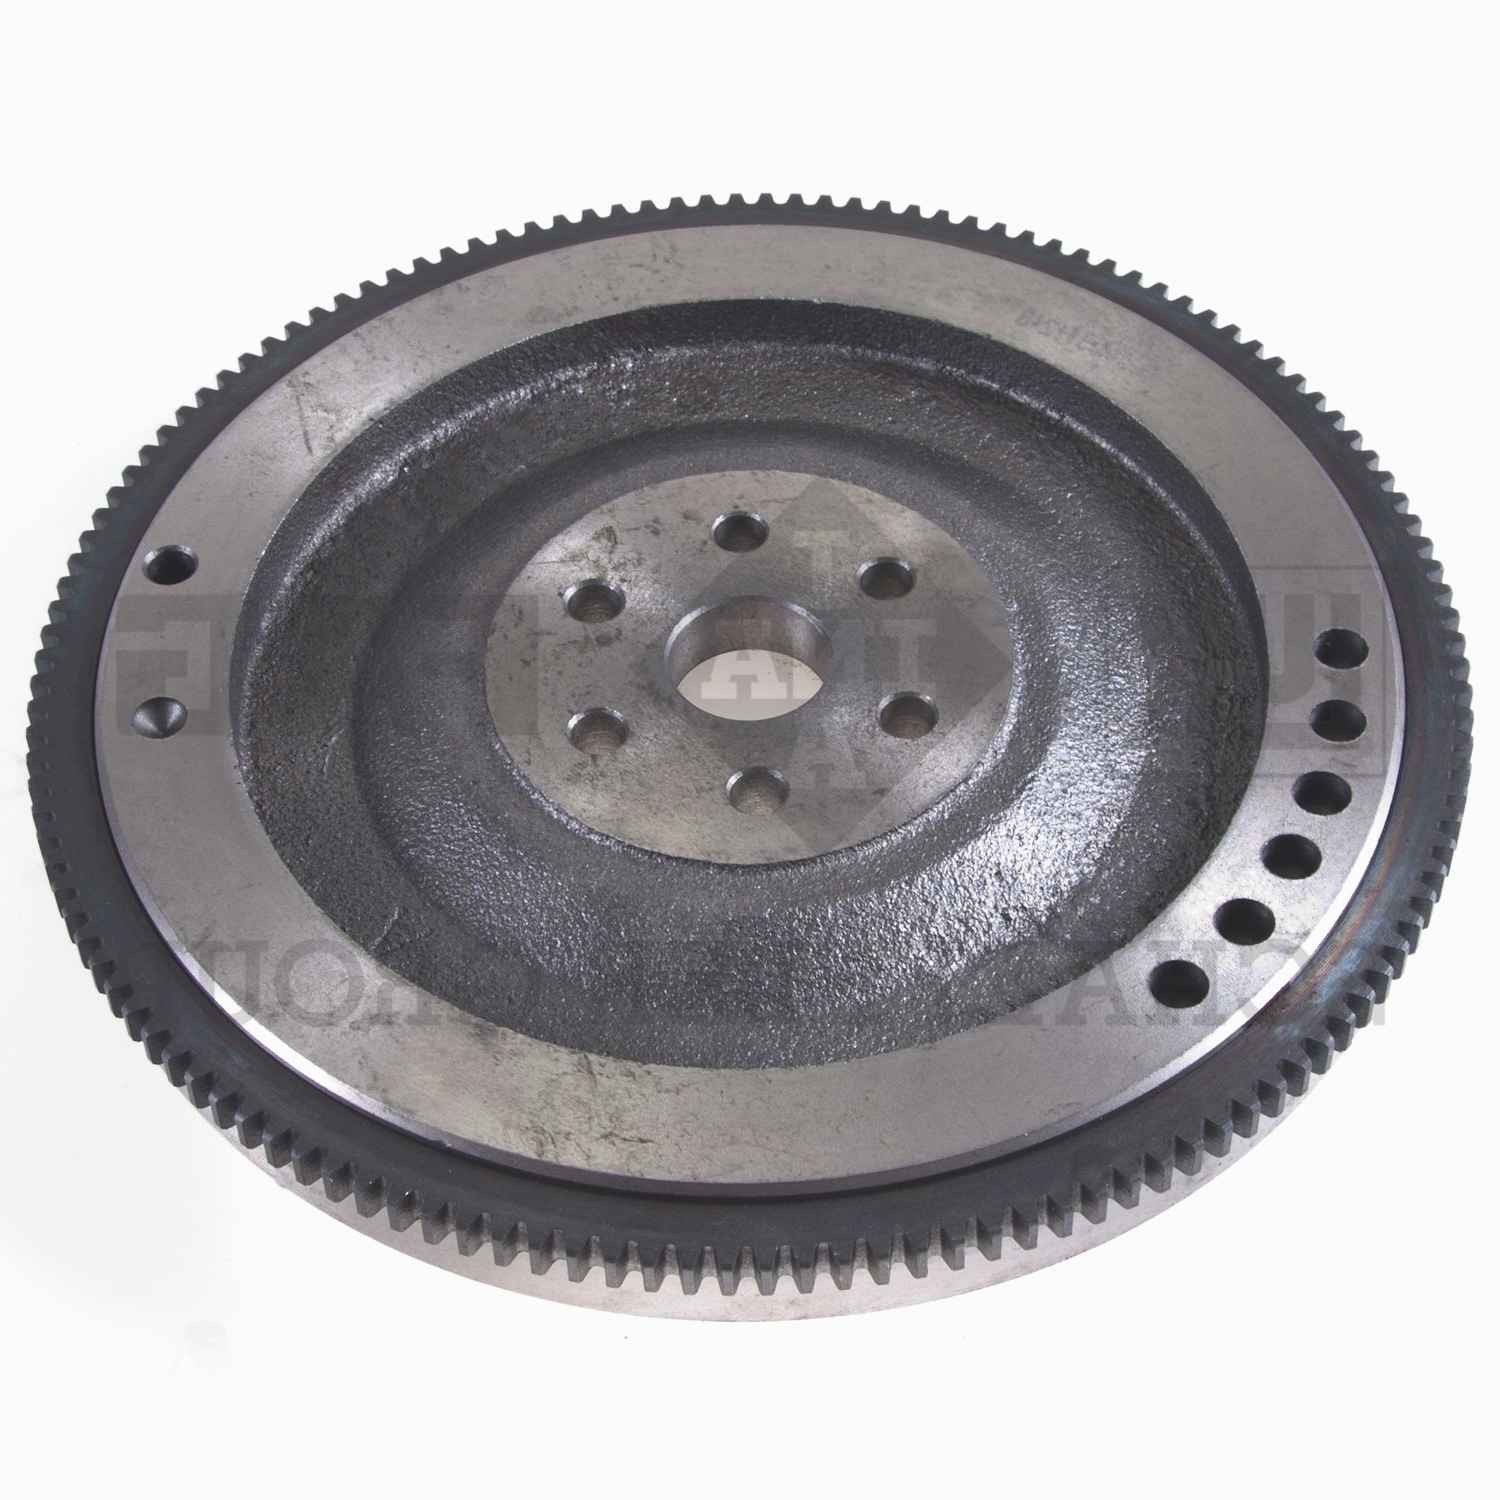 Flywheel Clutch Diagram New ford Ranger Clutch Of Flywheel Clutch Diagram